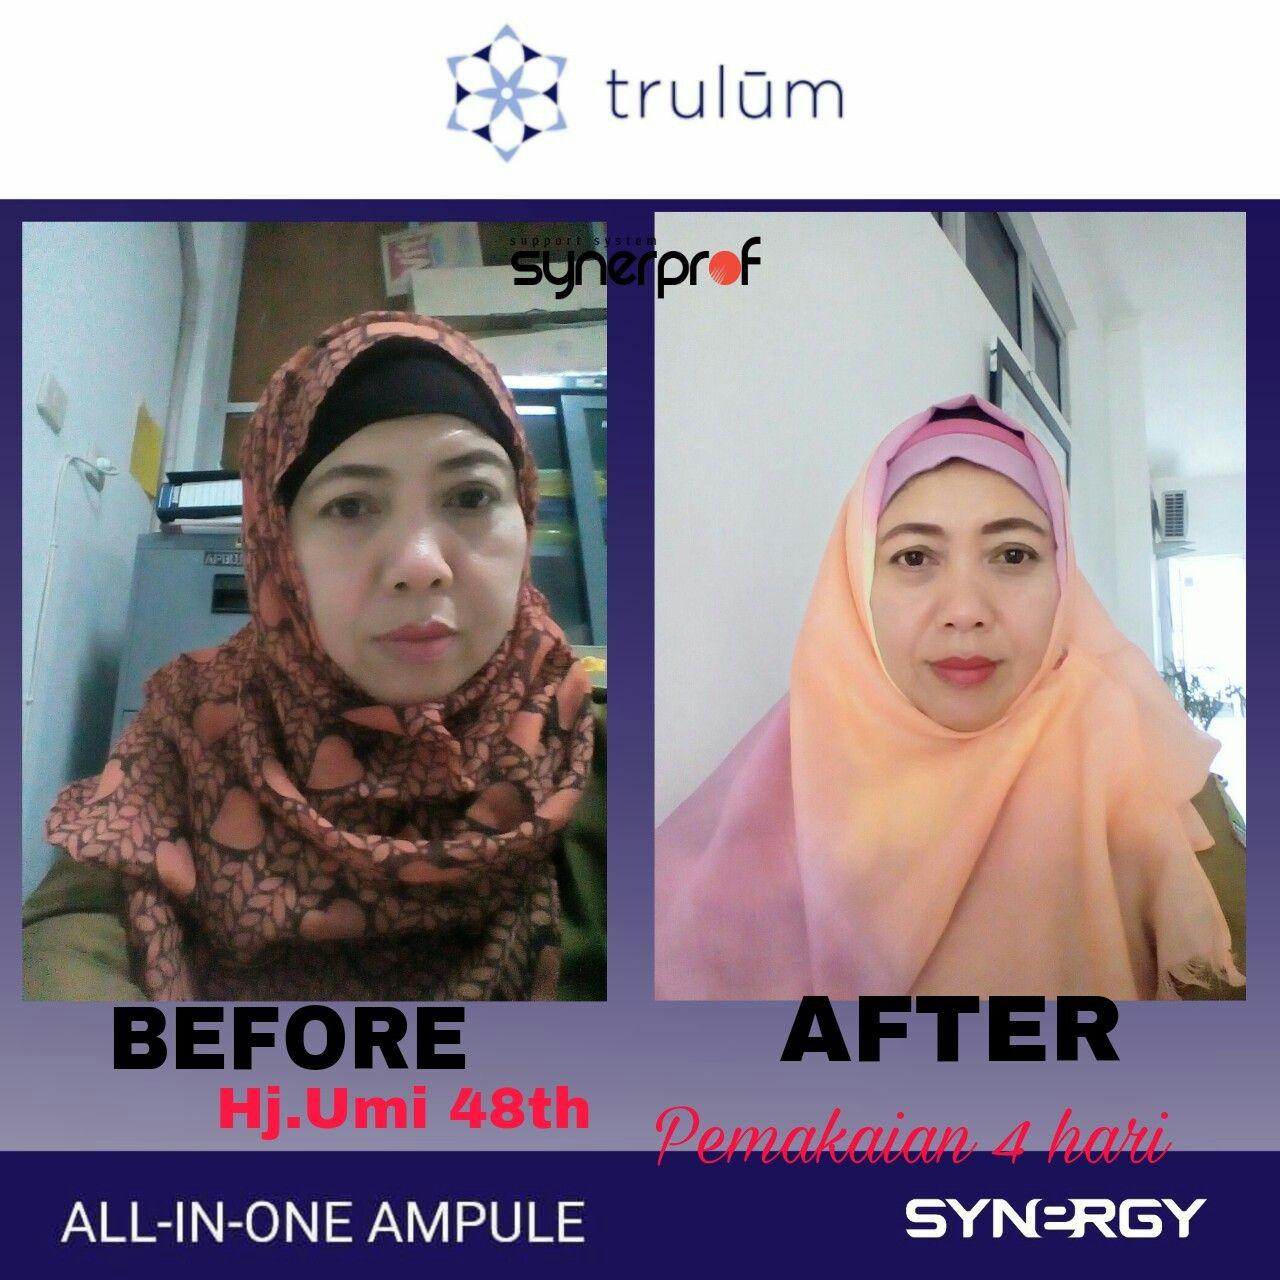 Jual Trulum All In One Di Permata, Bener Meriah WA: 08112338376